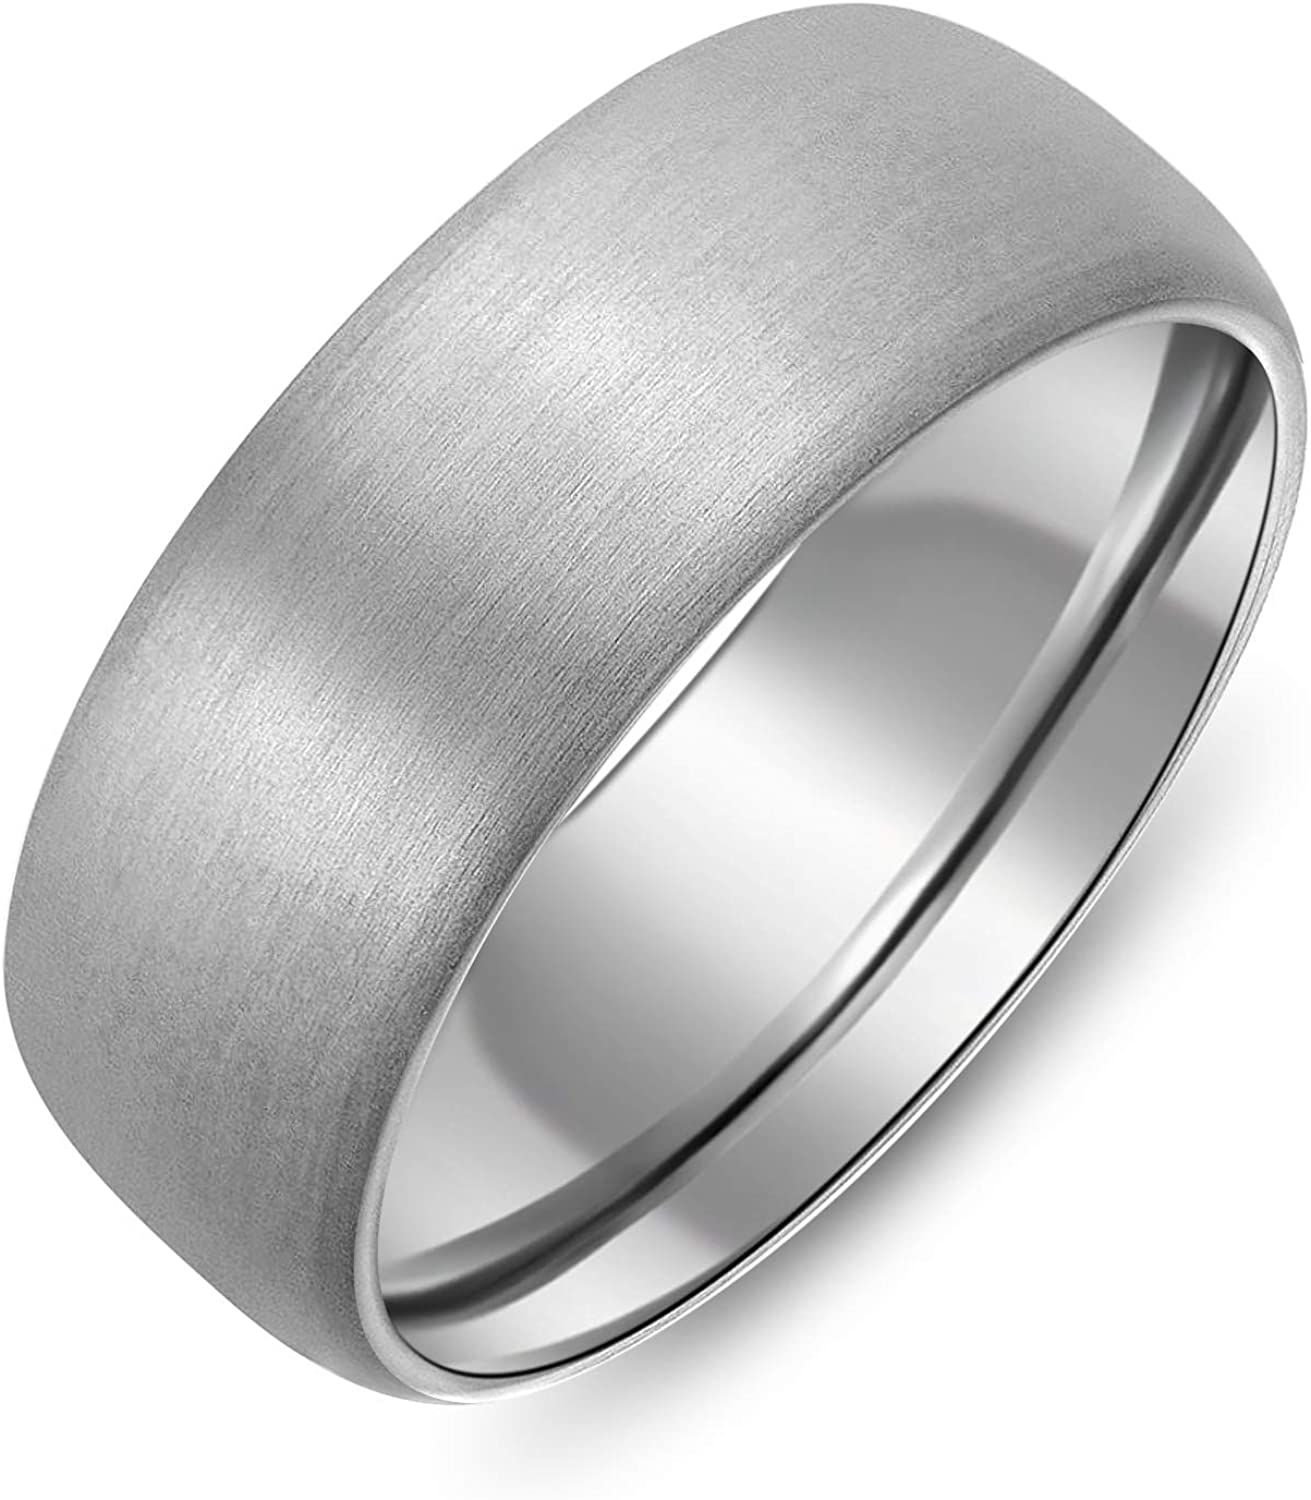 SJ Fashion 8mm Dome Brushed Plain Titanium Ring Mens Womens Wedding Bands Comfort Fit Size 5-16